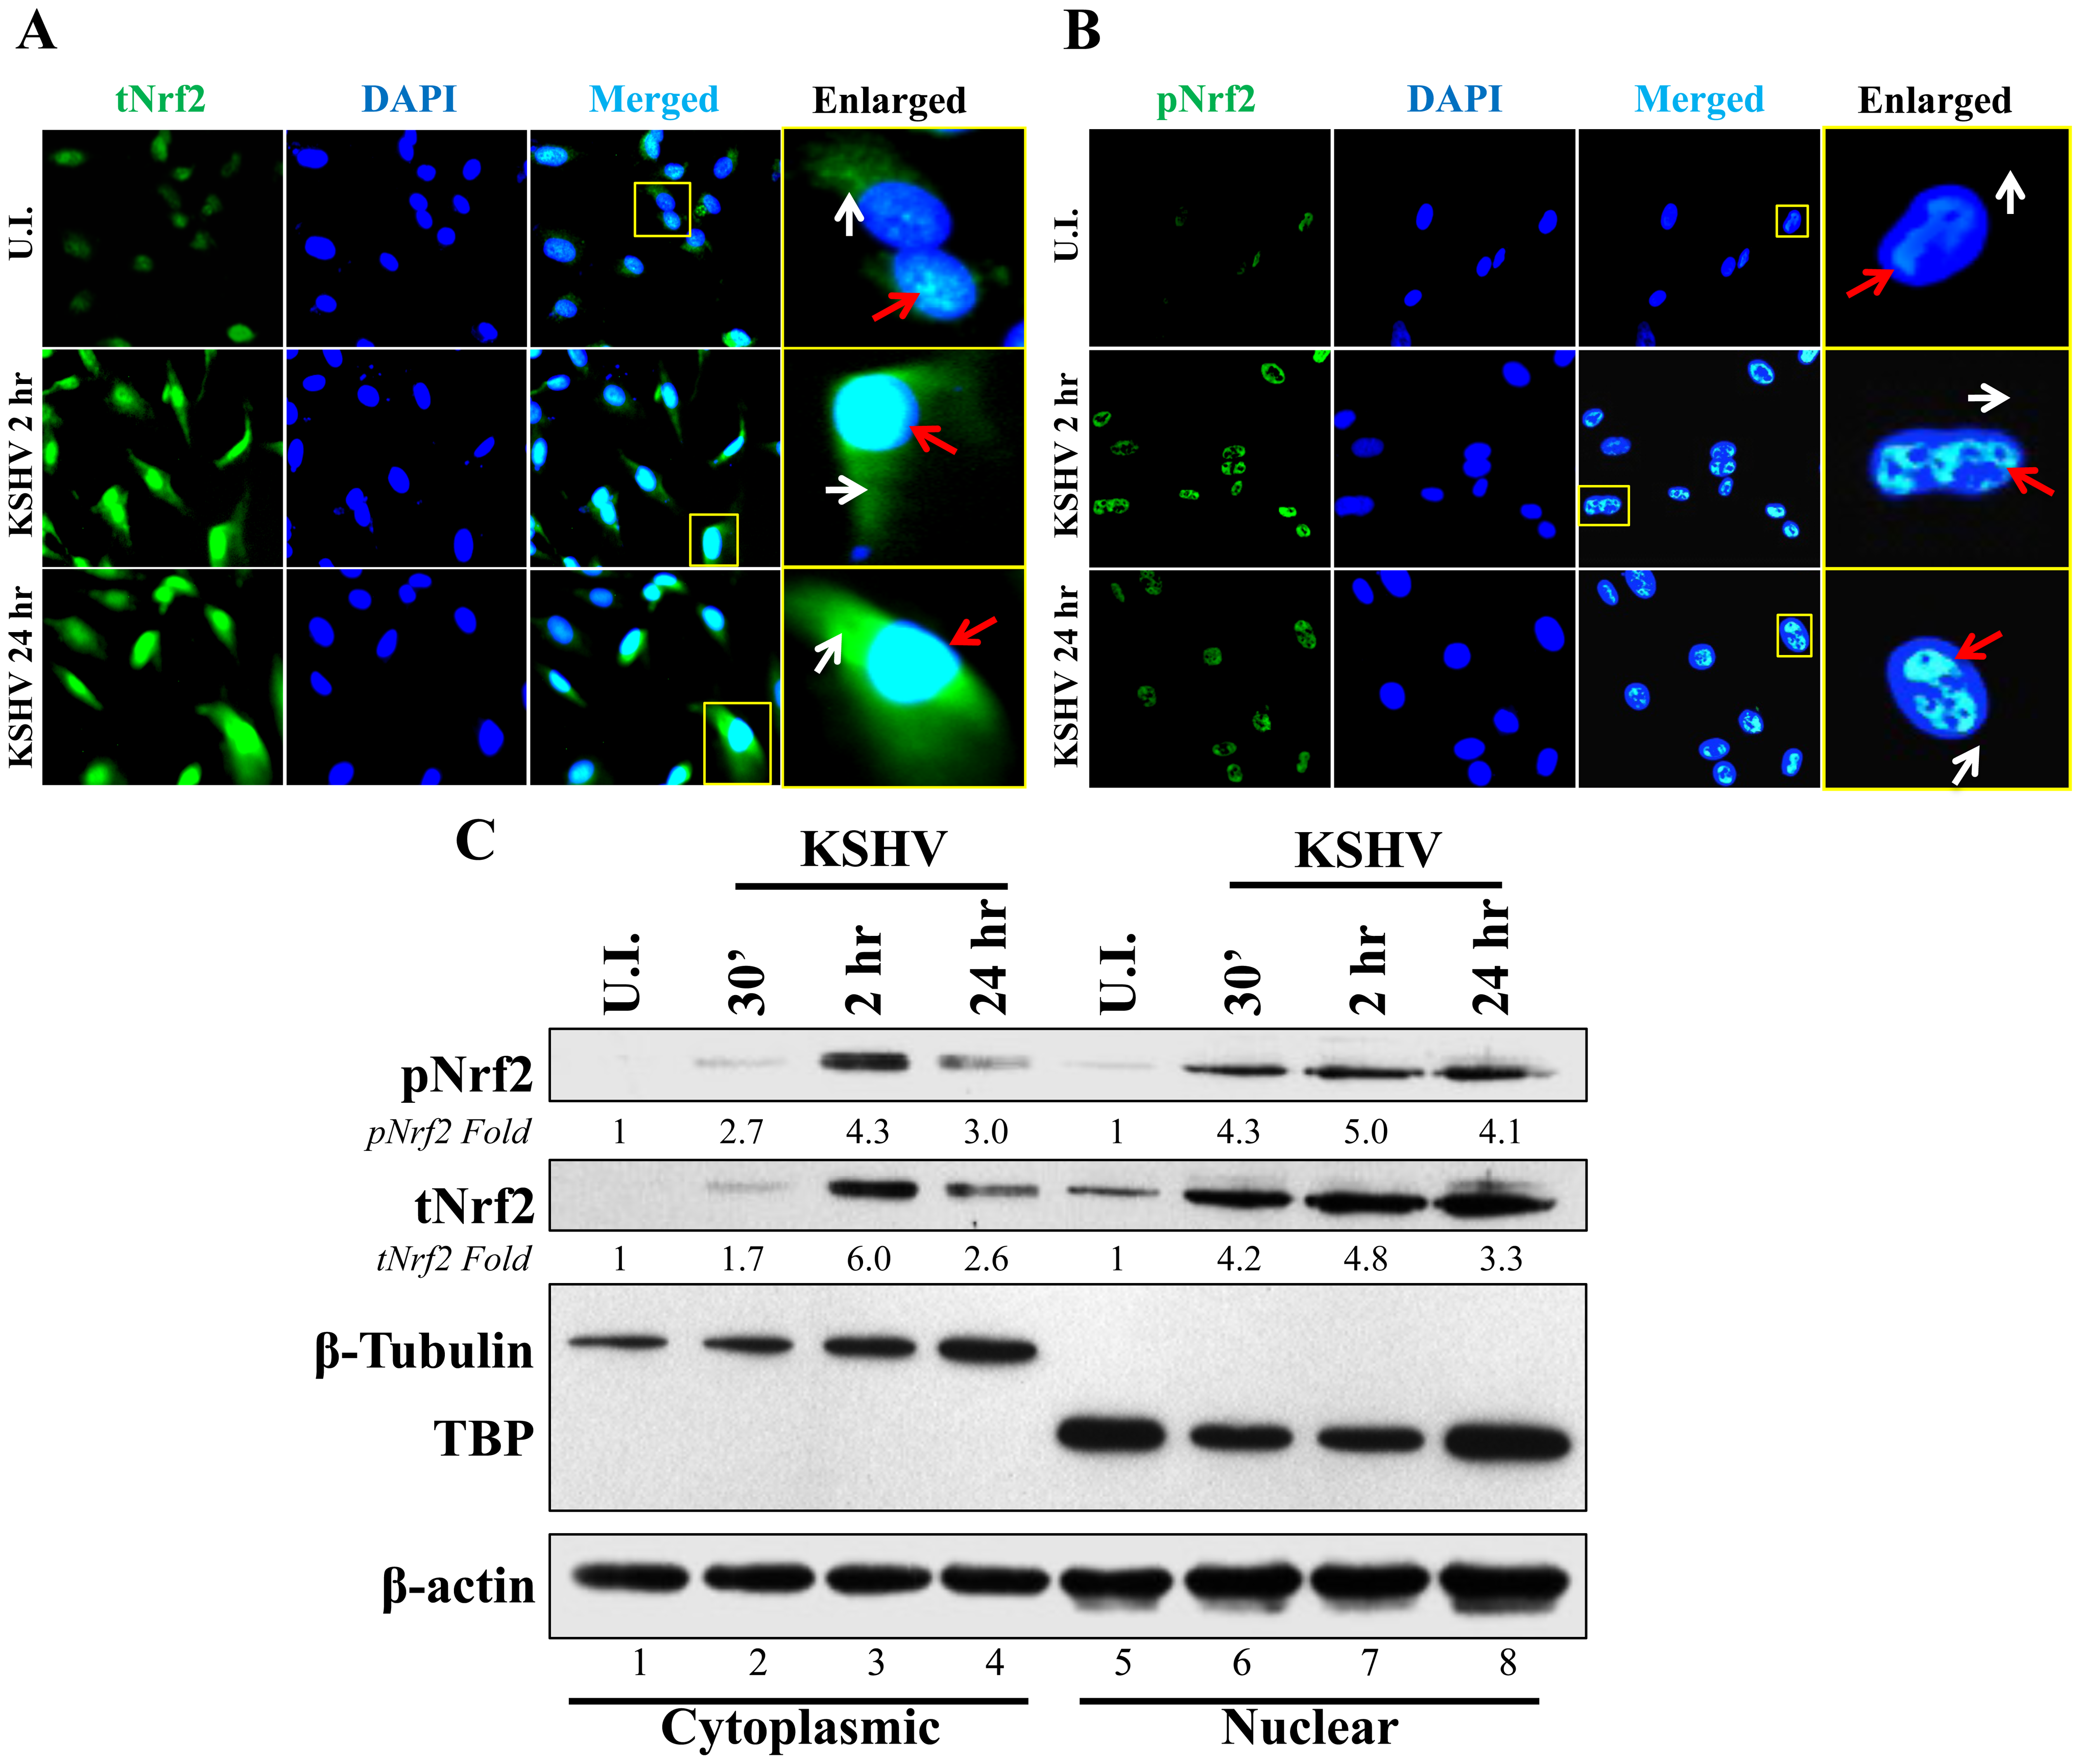 Nuclear localization of Nrf2 during KSHV infection.